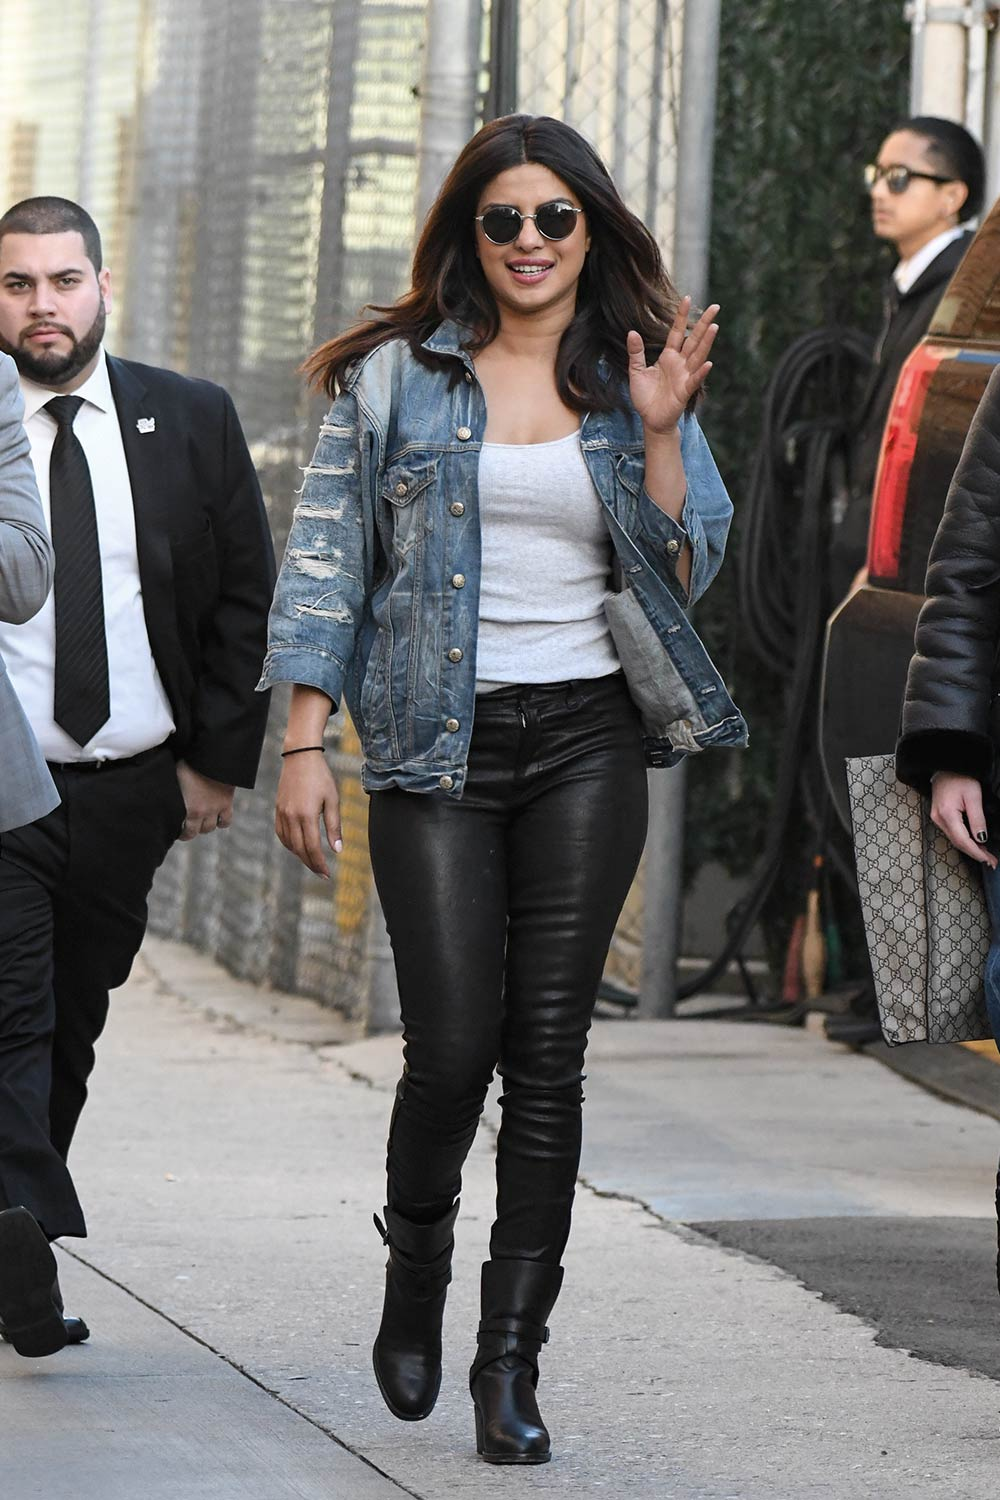 Priyanka Chopra seen at Jimmy Kimmel Live